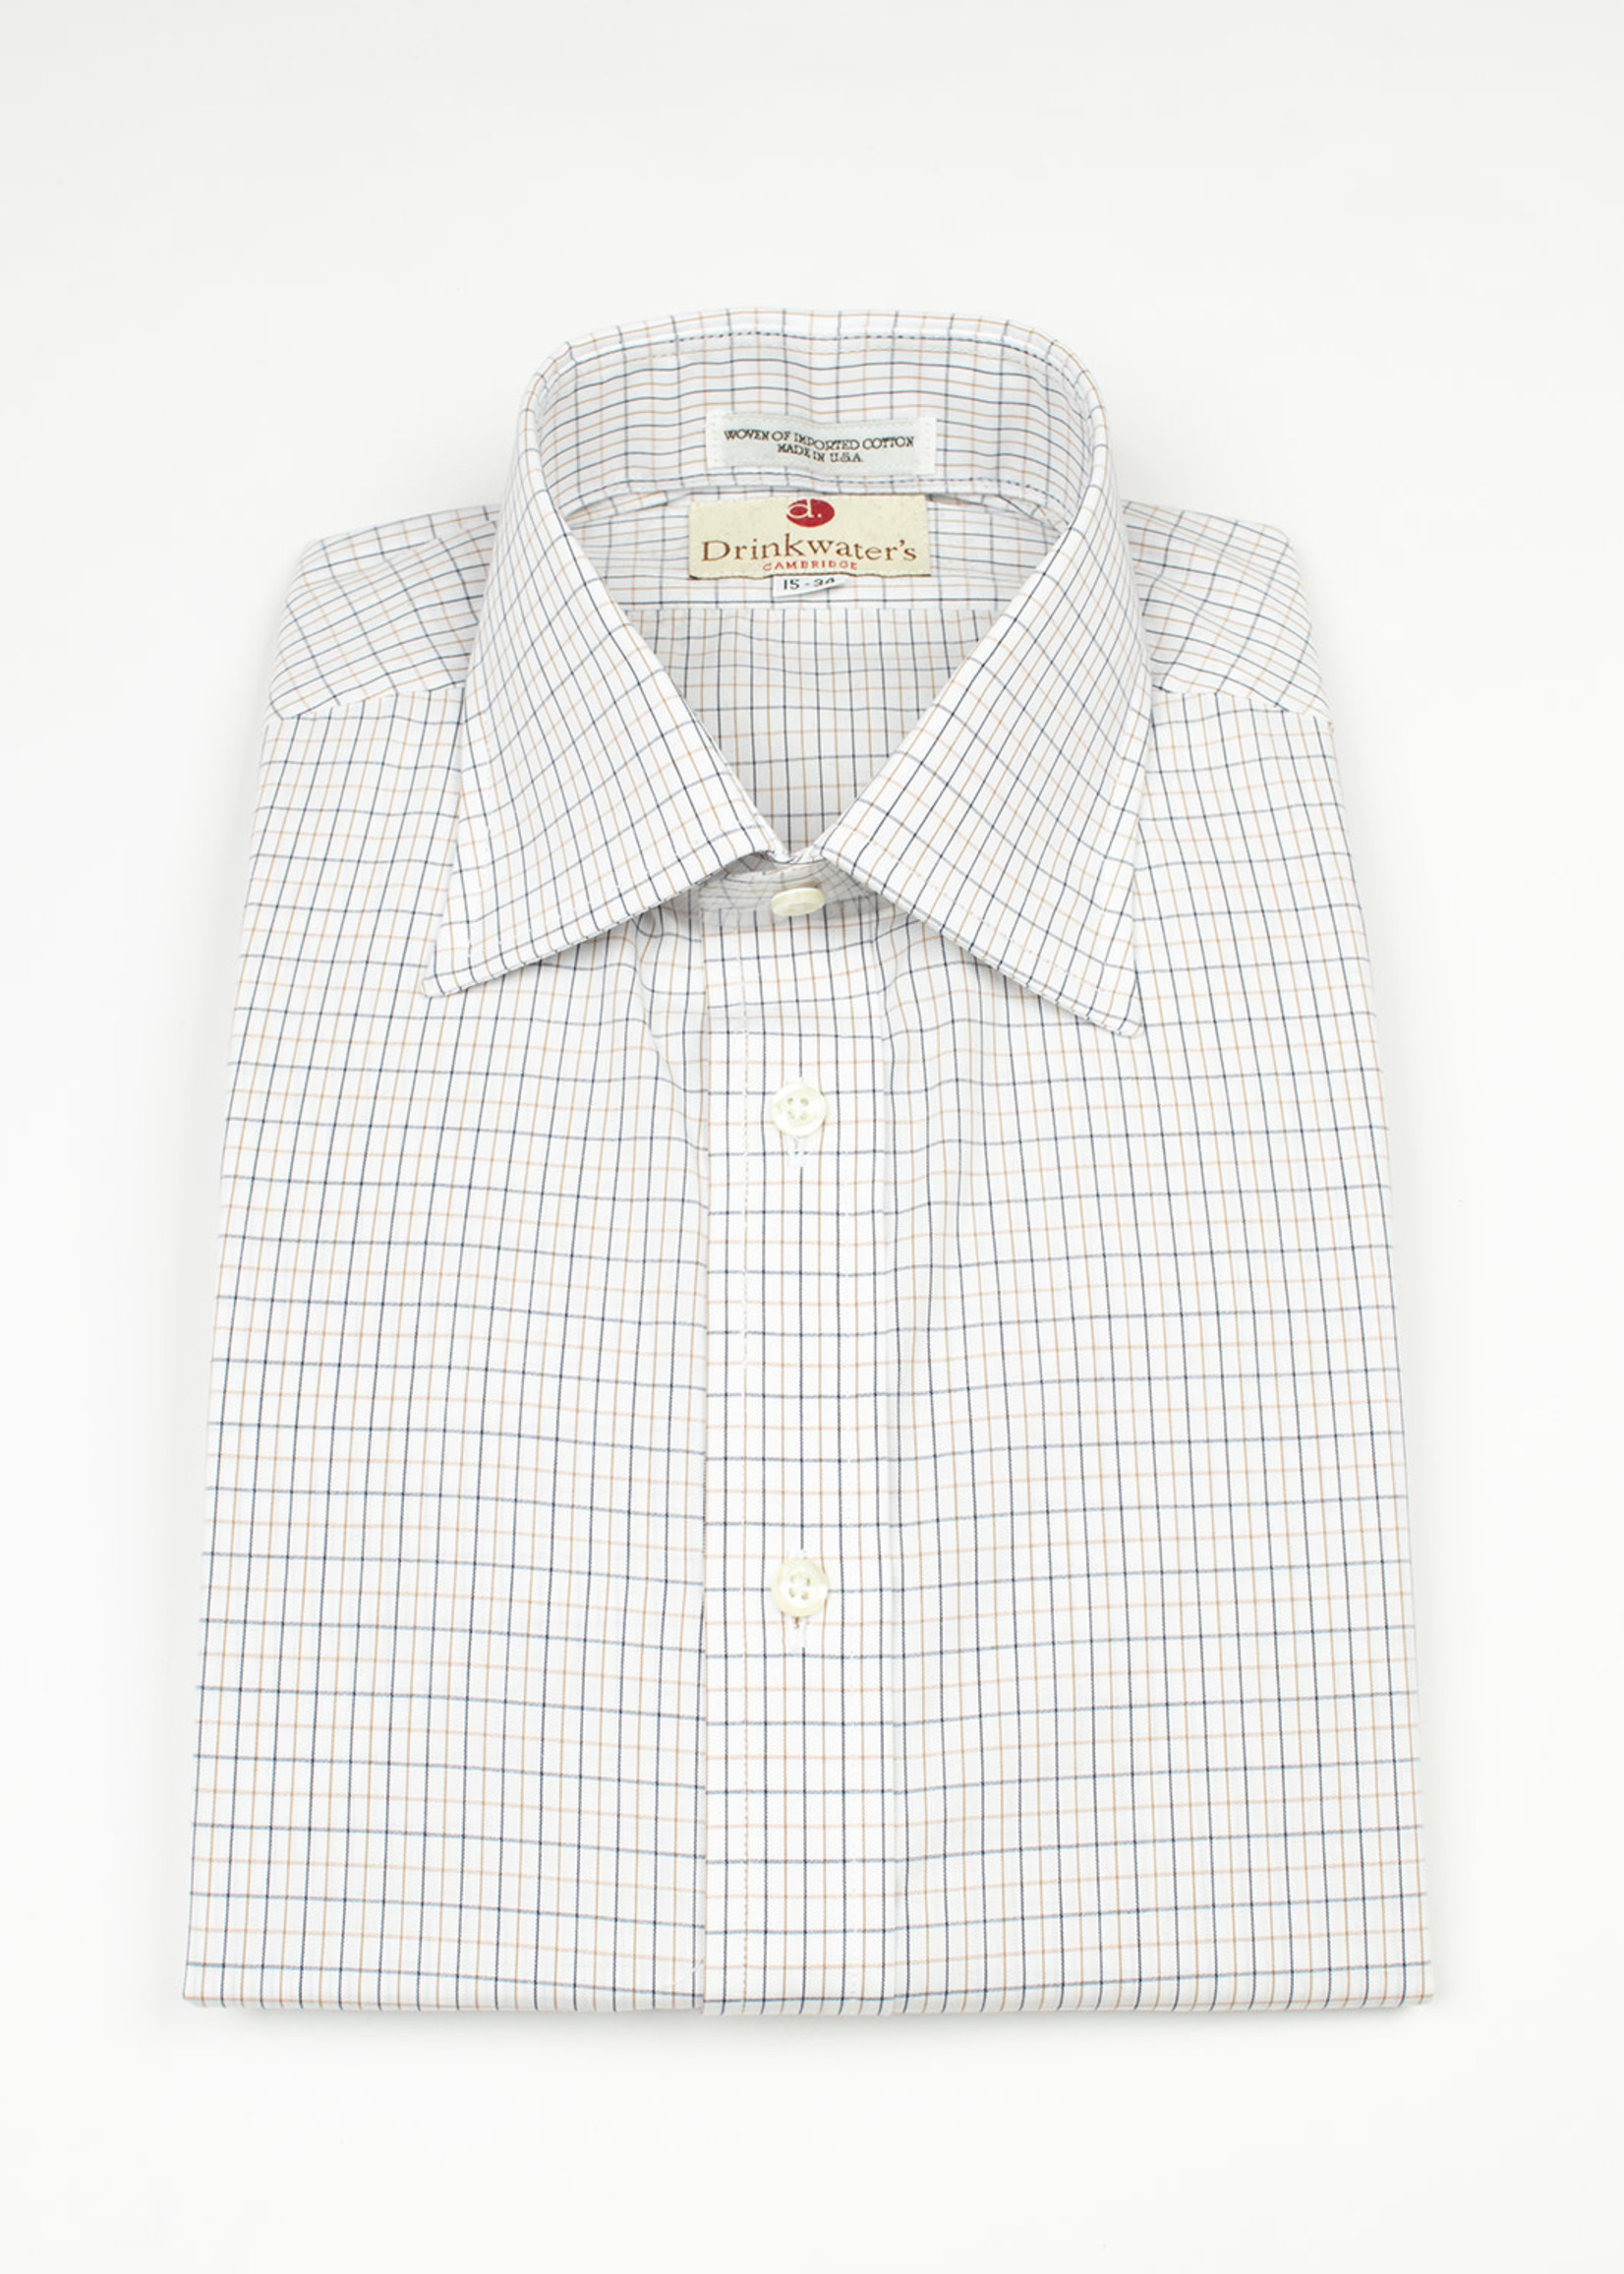 Blue & Tan Tattersall Spread Collar by Drinkwater's